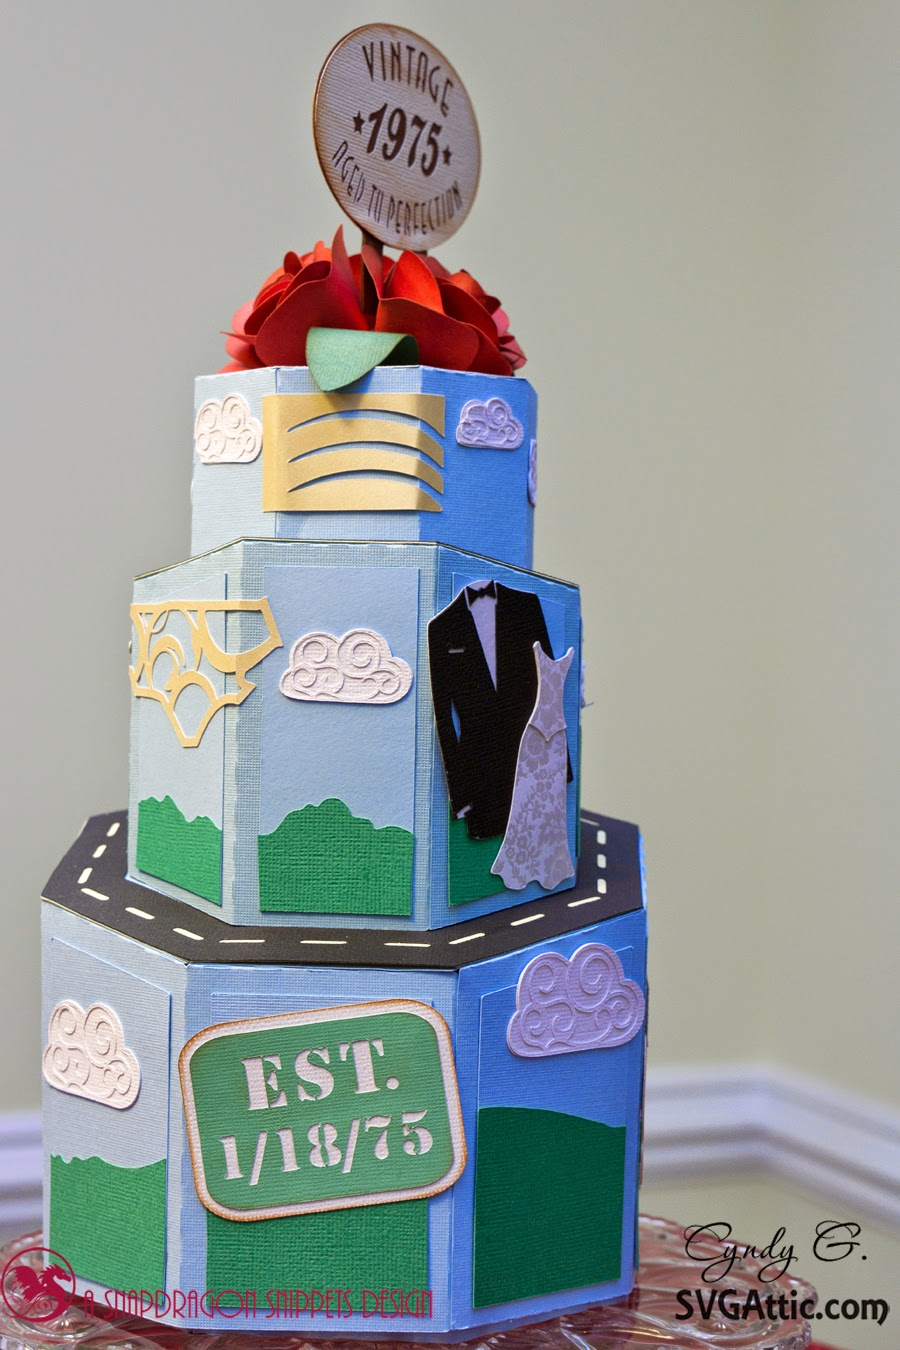 3d paper cake with life milestones i.e. born, wedding, children, etc.